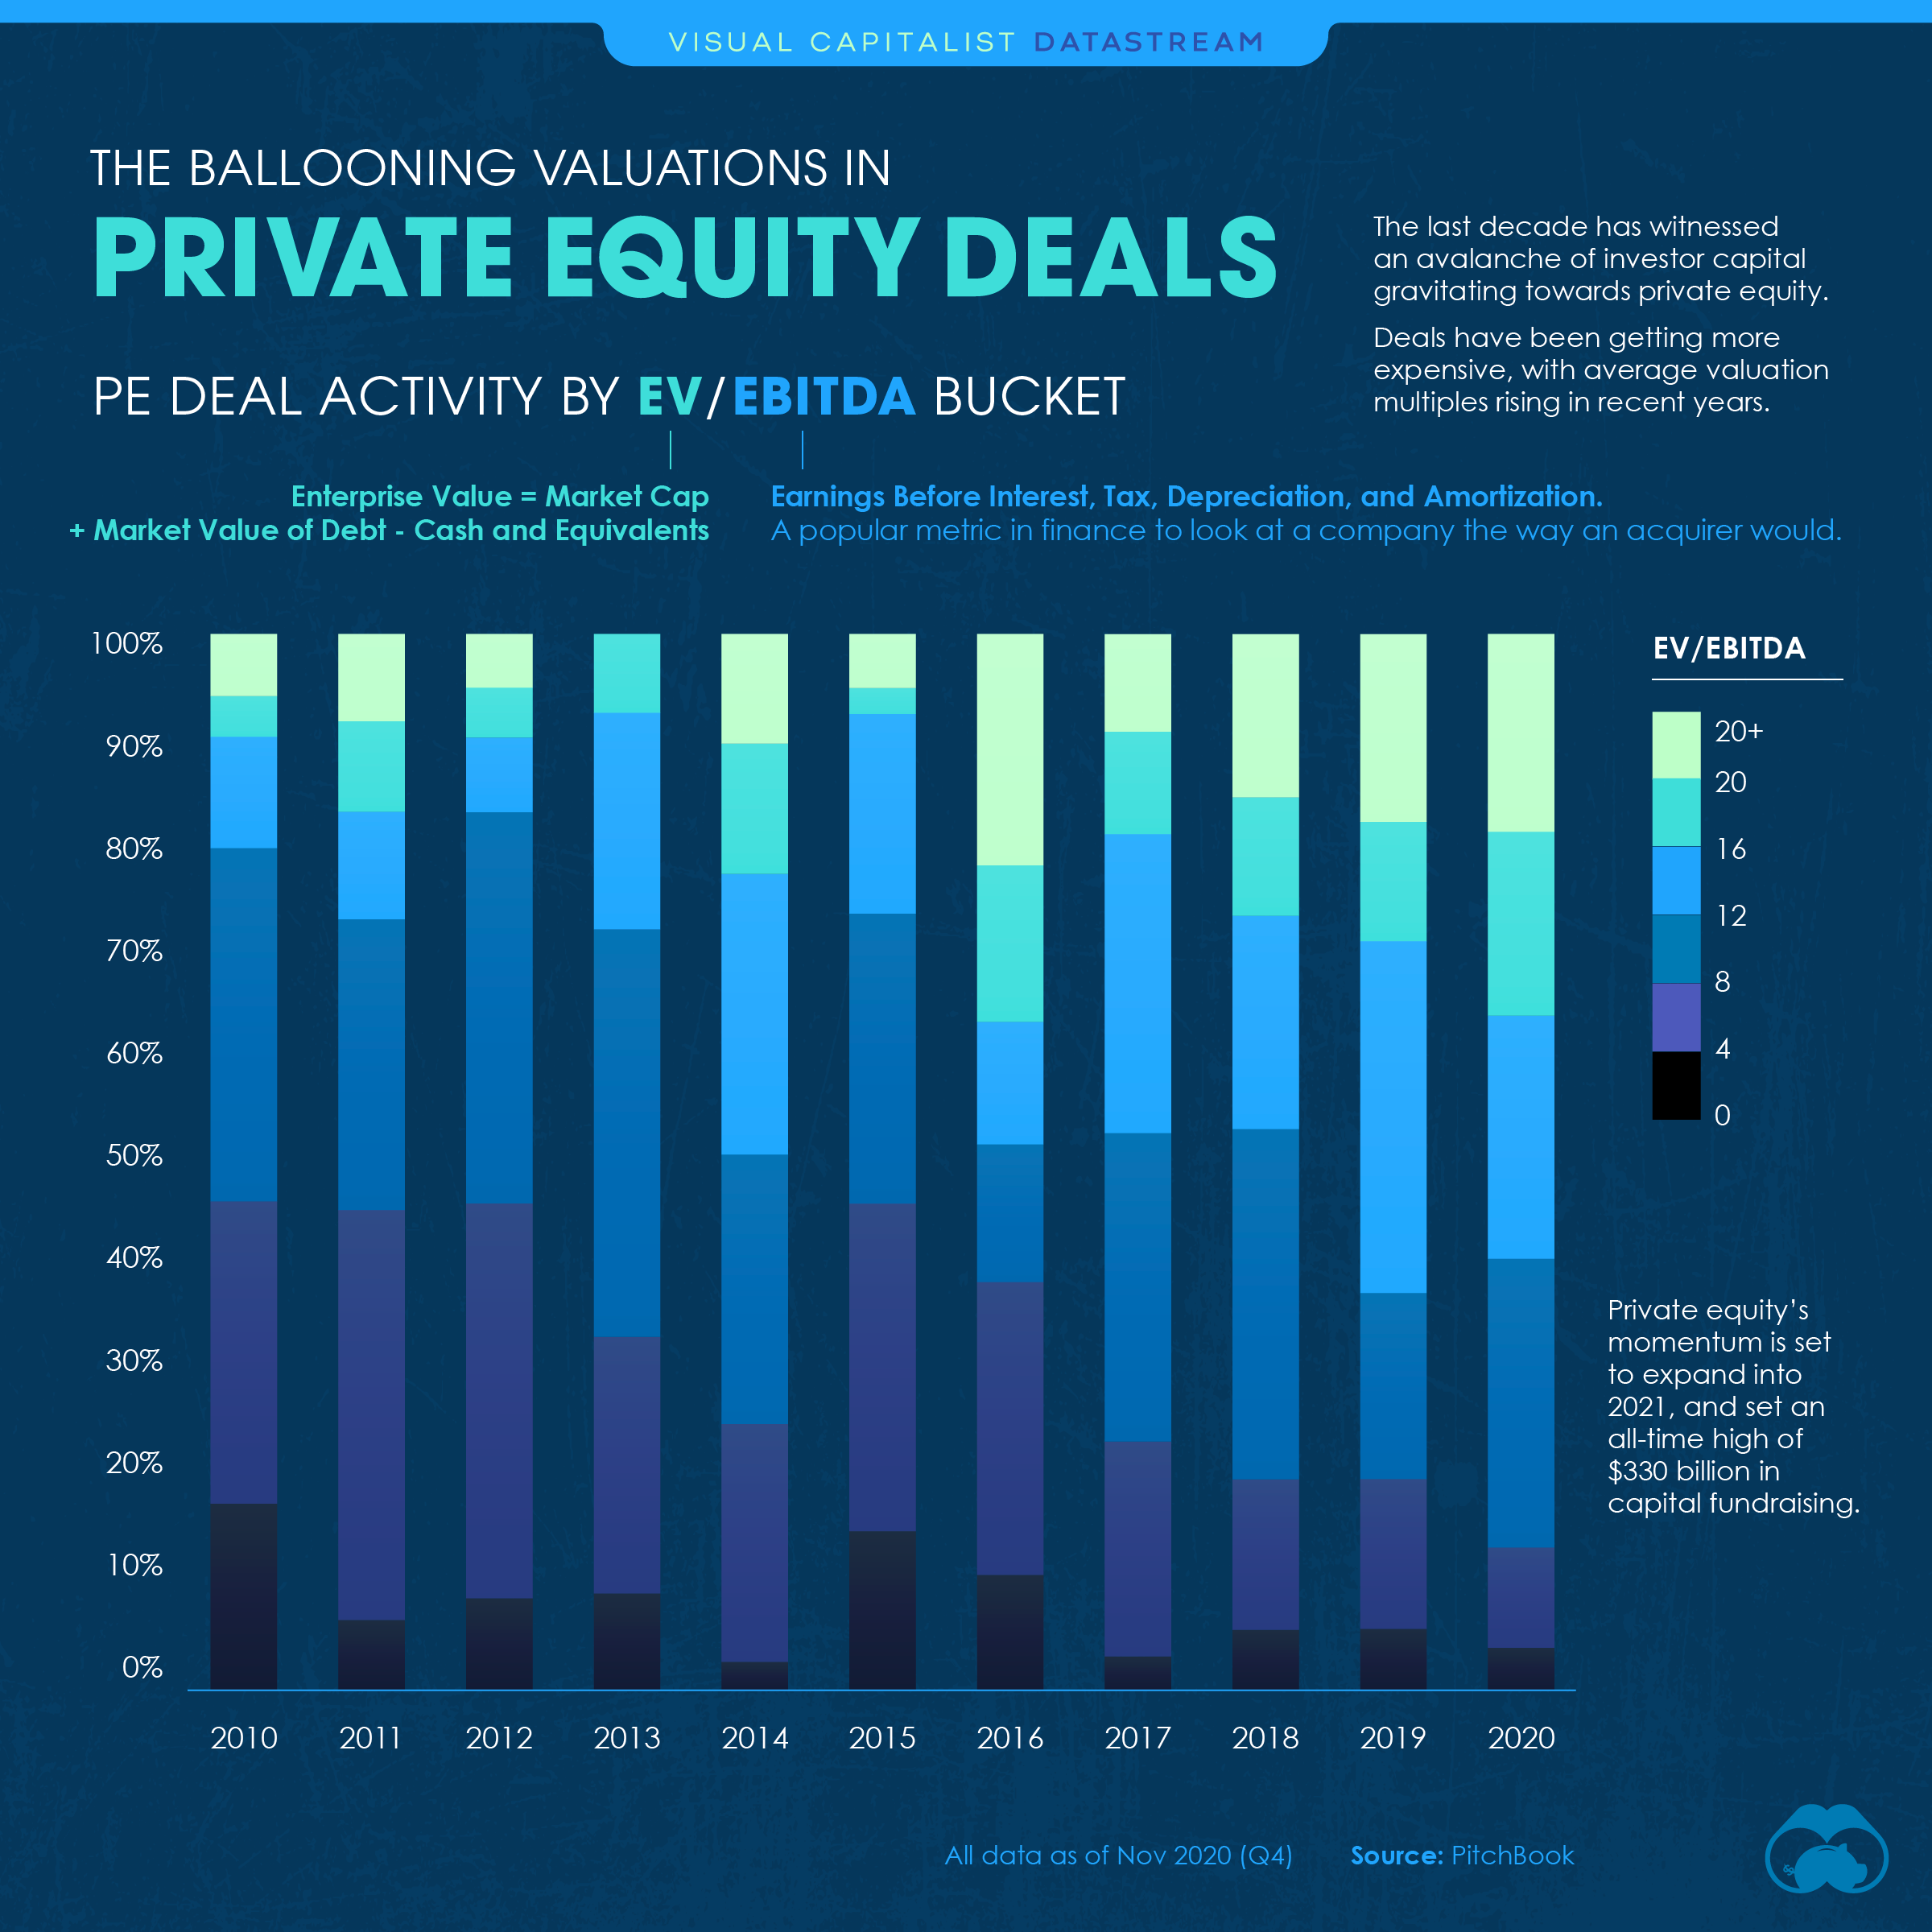 Private Equity Deals